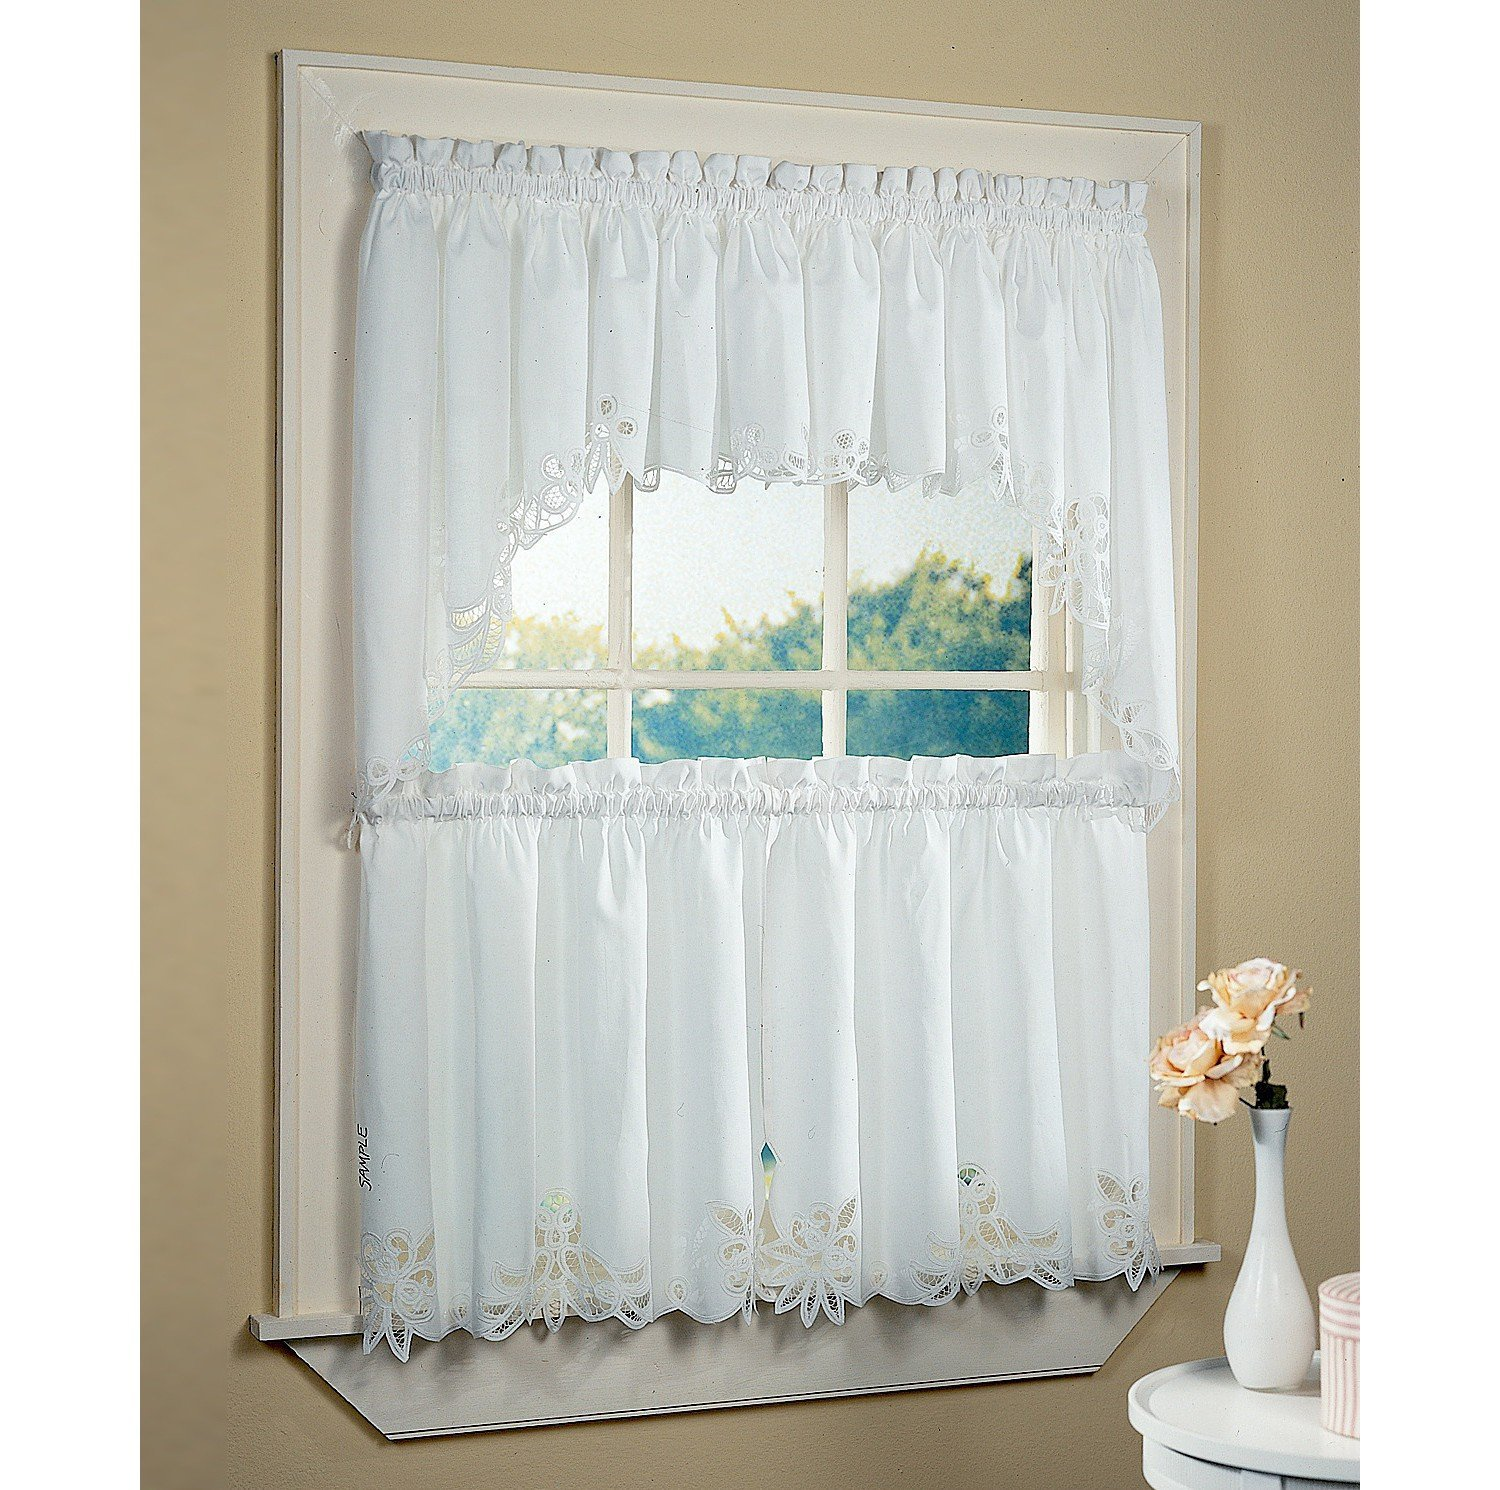 White bathroom window curtains a creative mom Bathroom window curtains